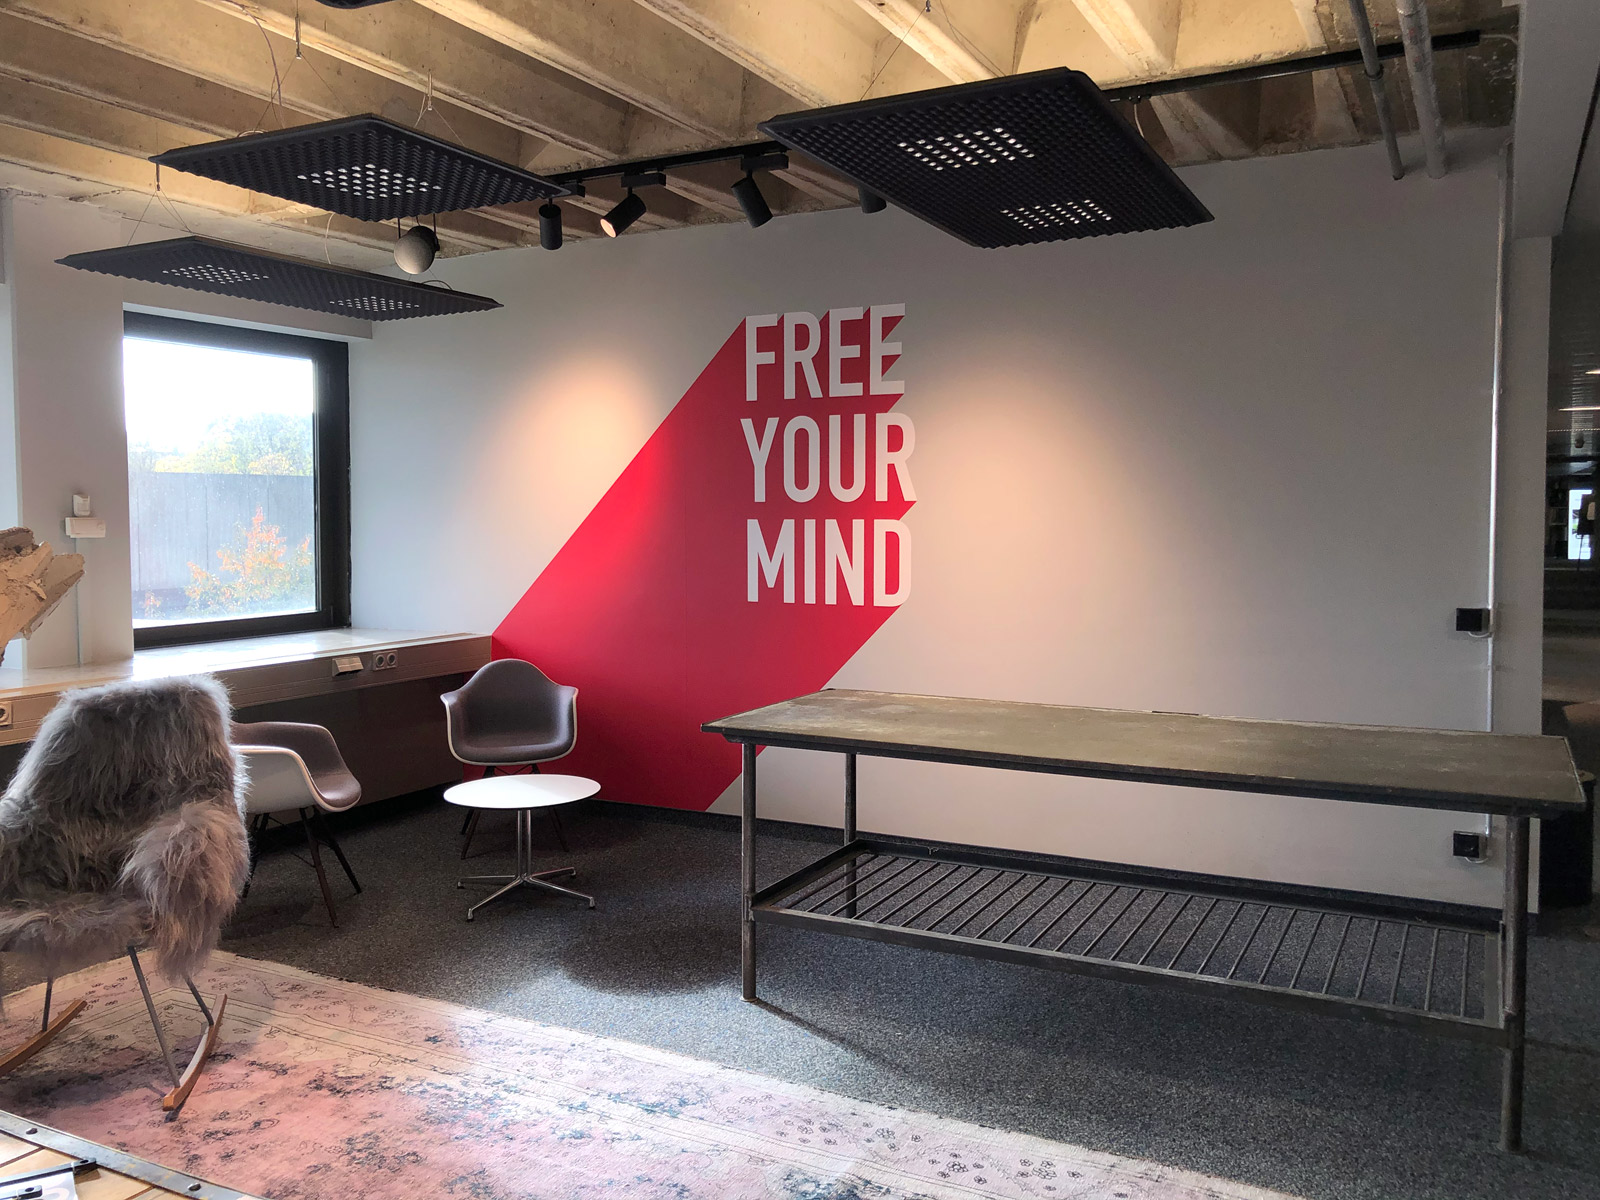 FREE YOUR MIND Wandtattoo im Besprechungsraum